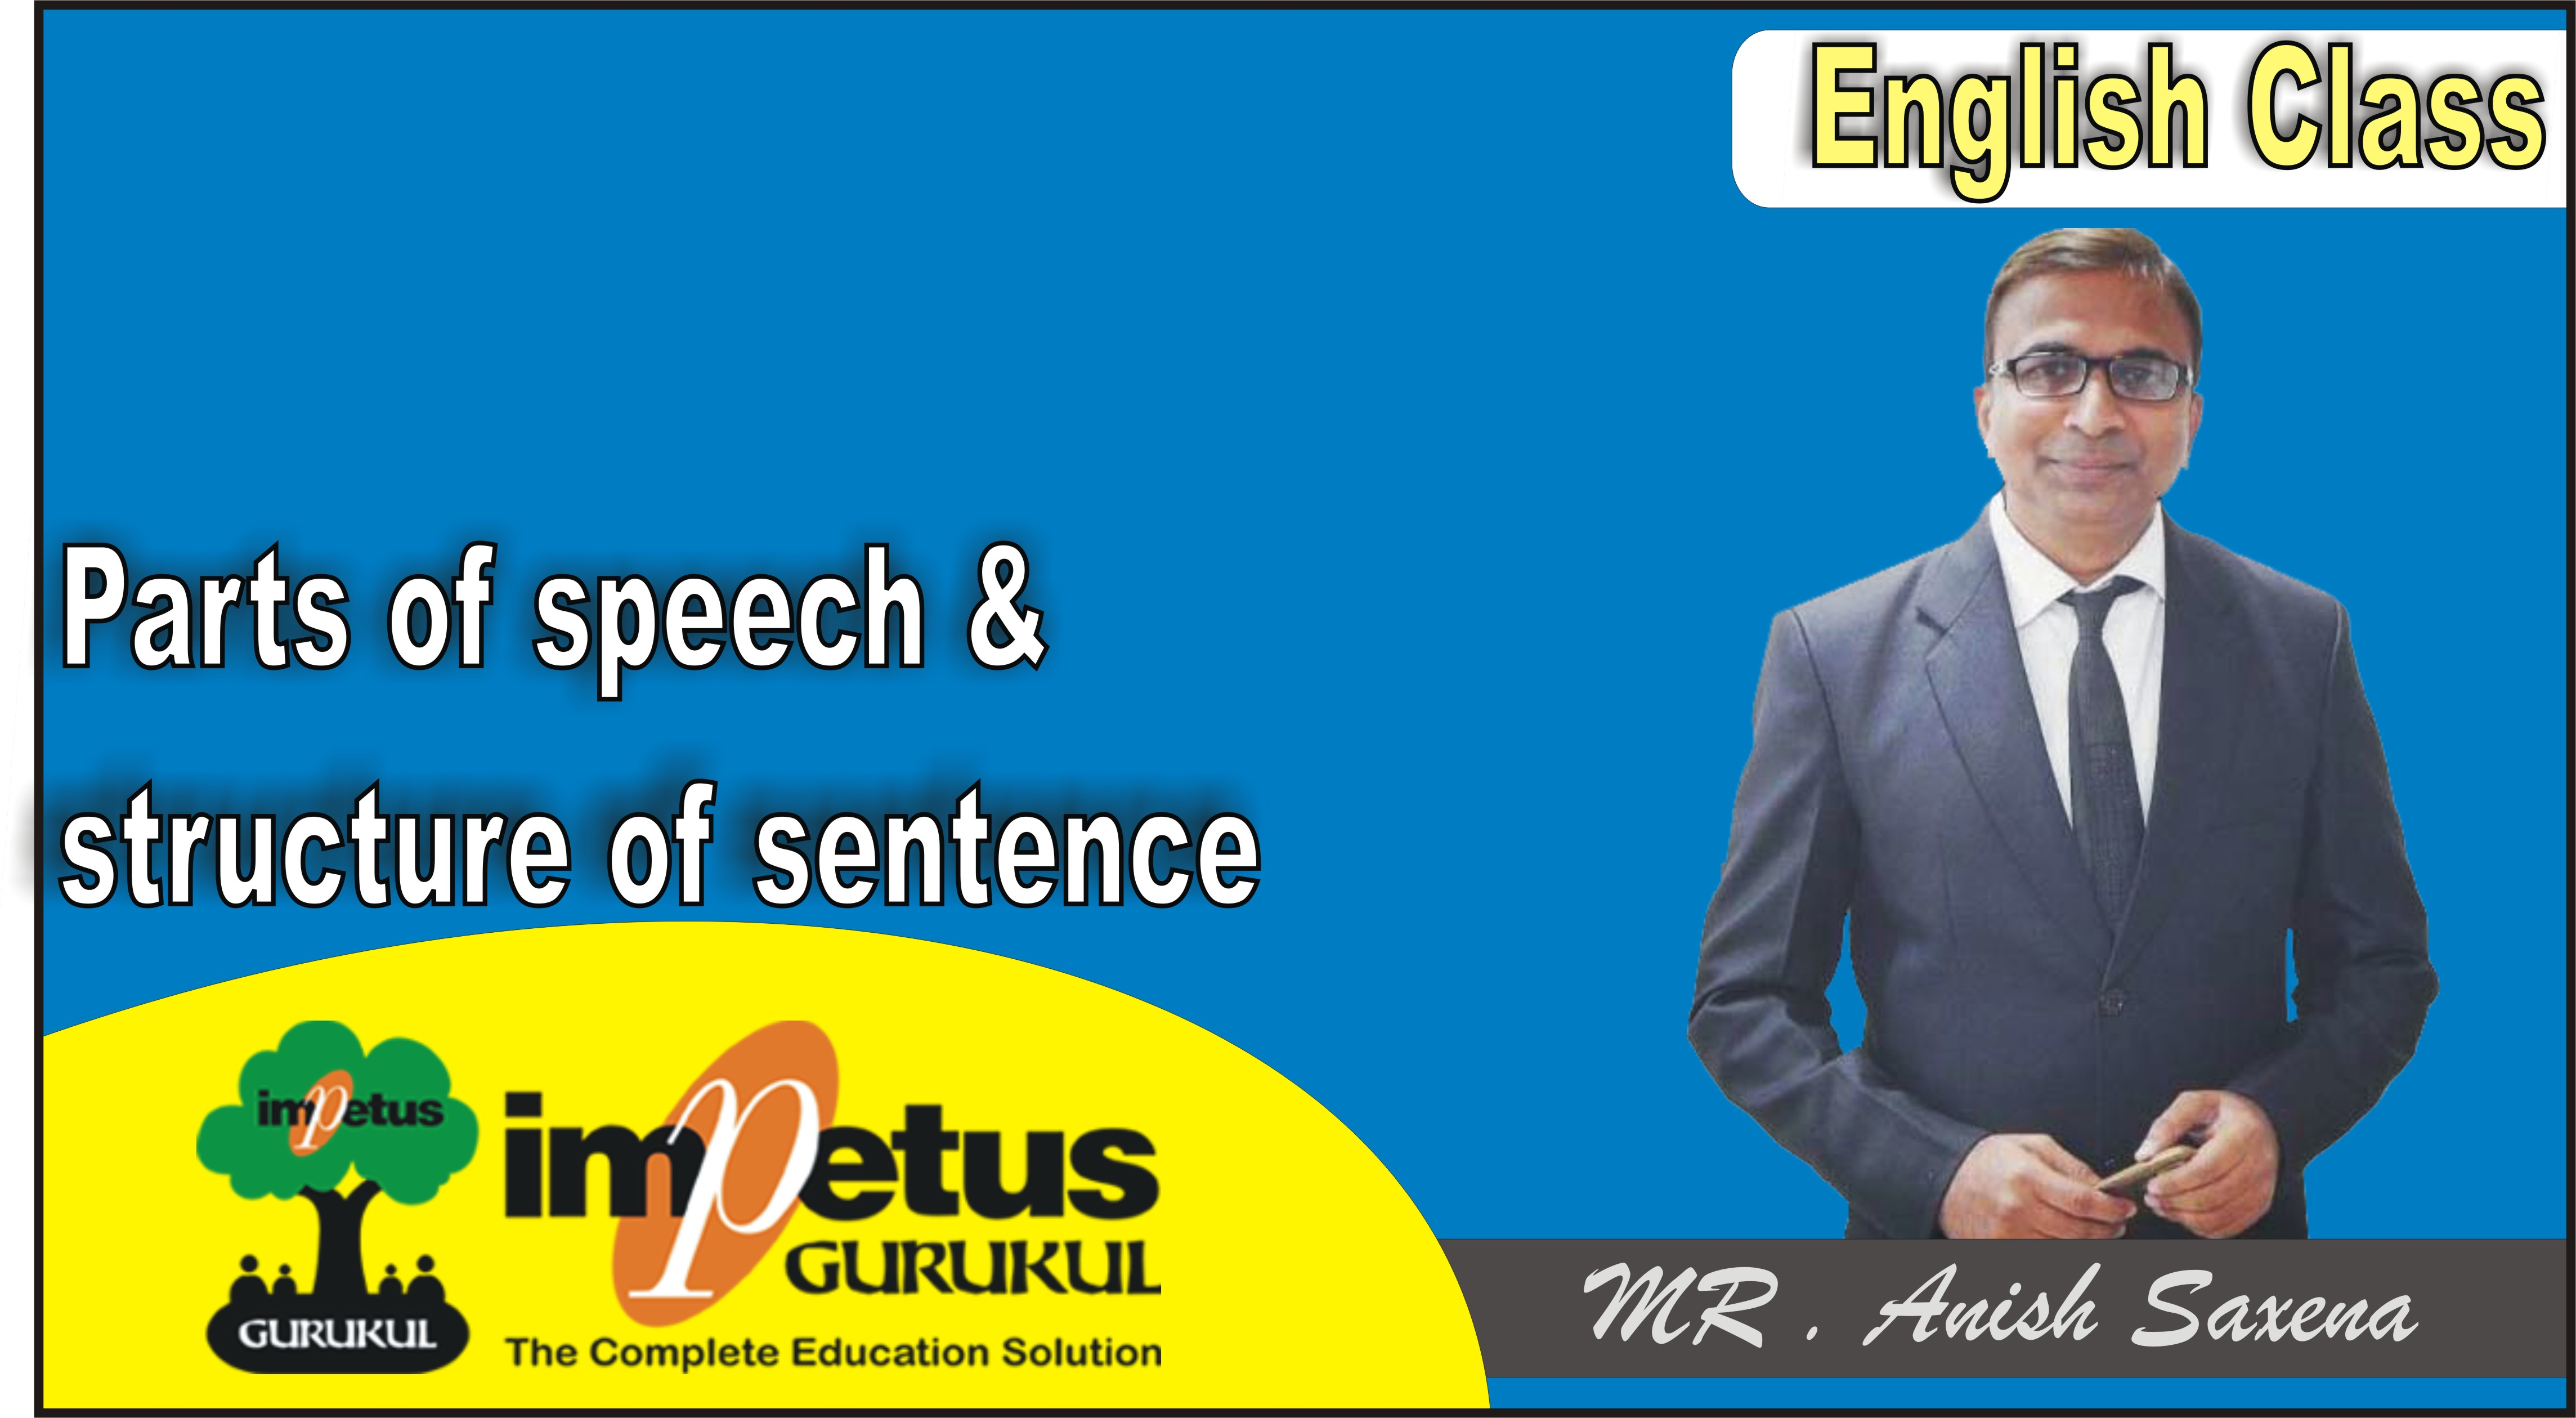 Parts of speech & structure of sentence